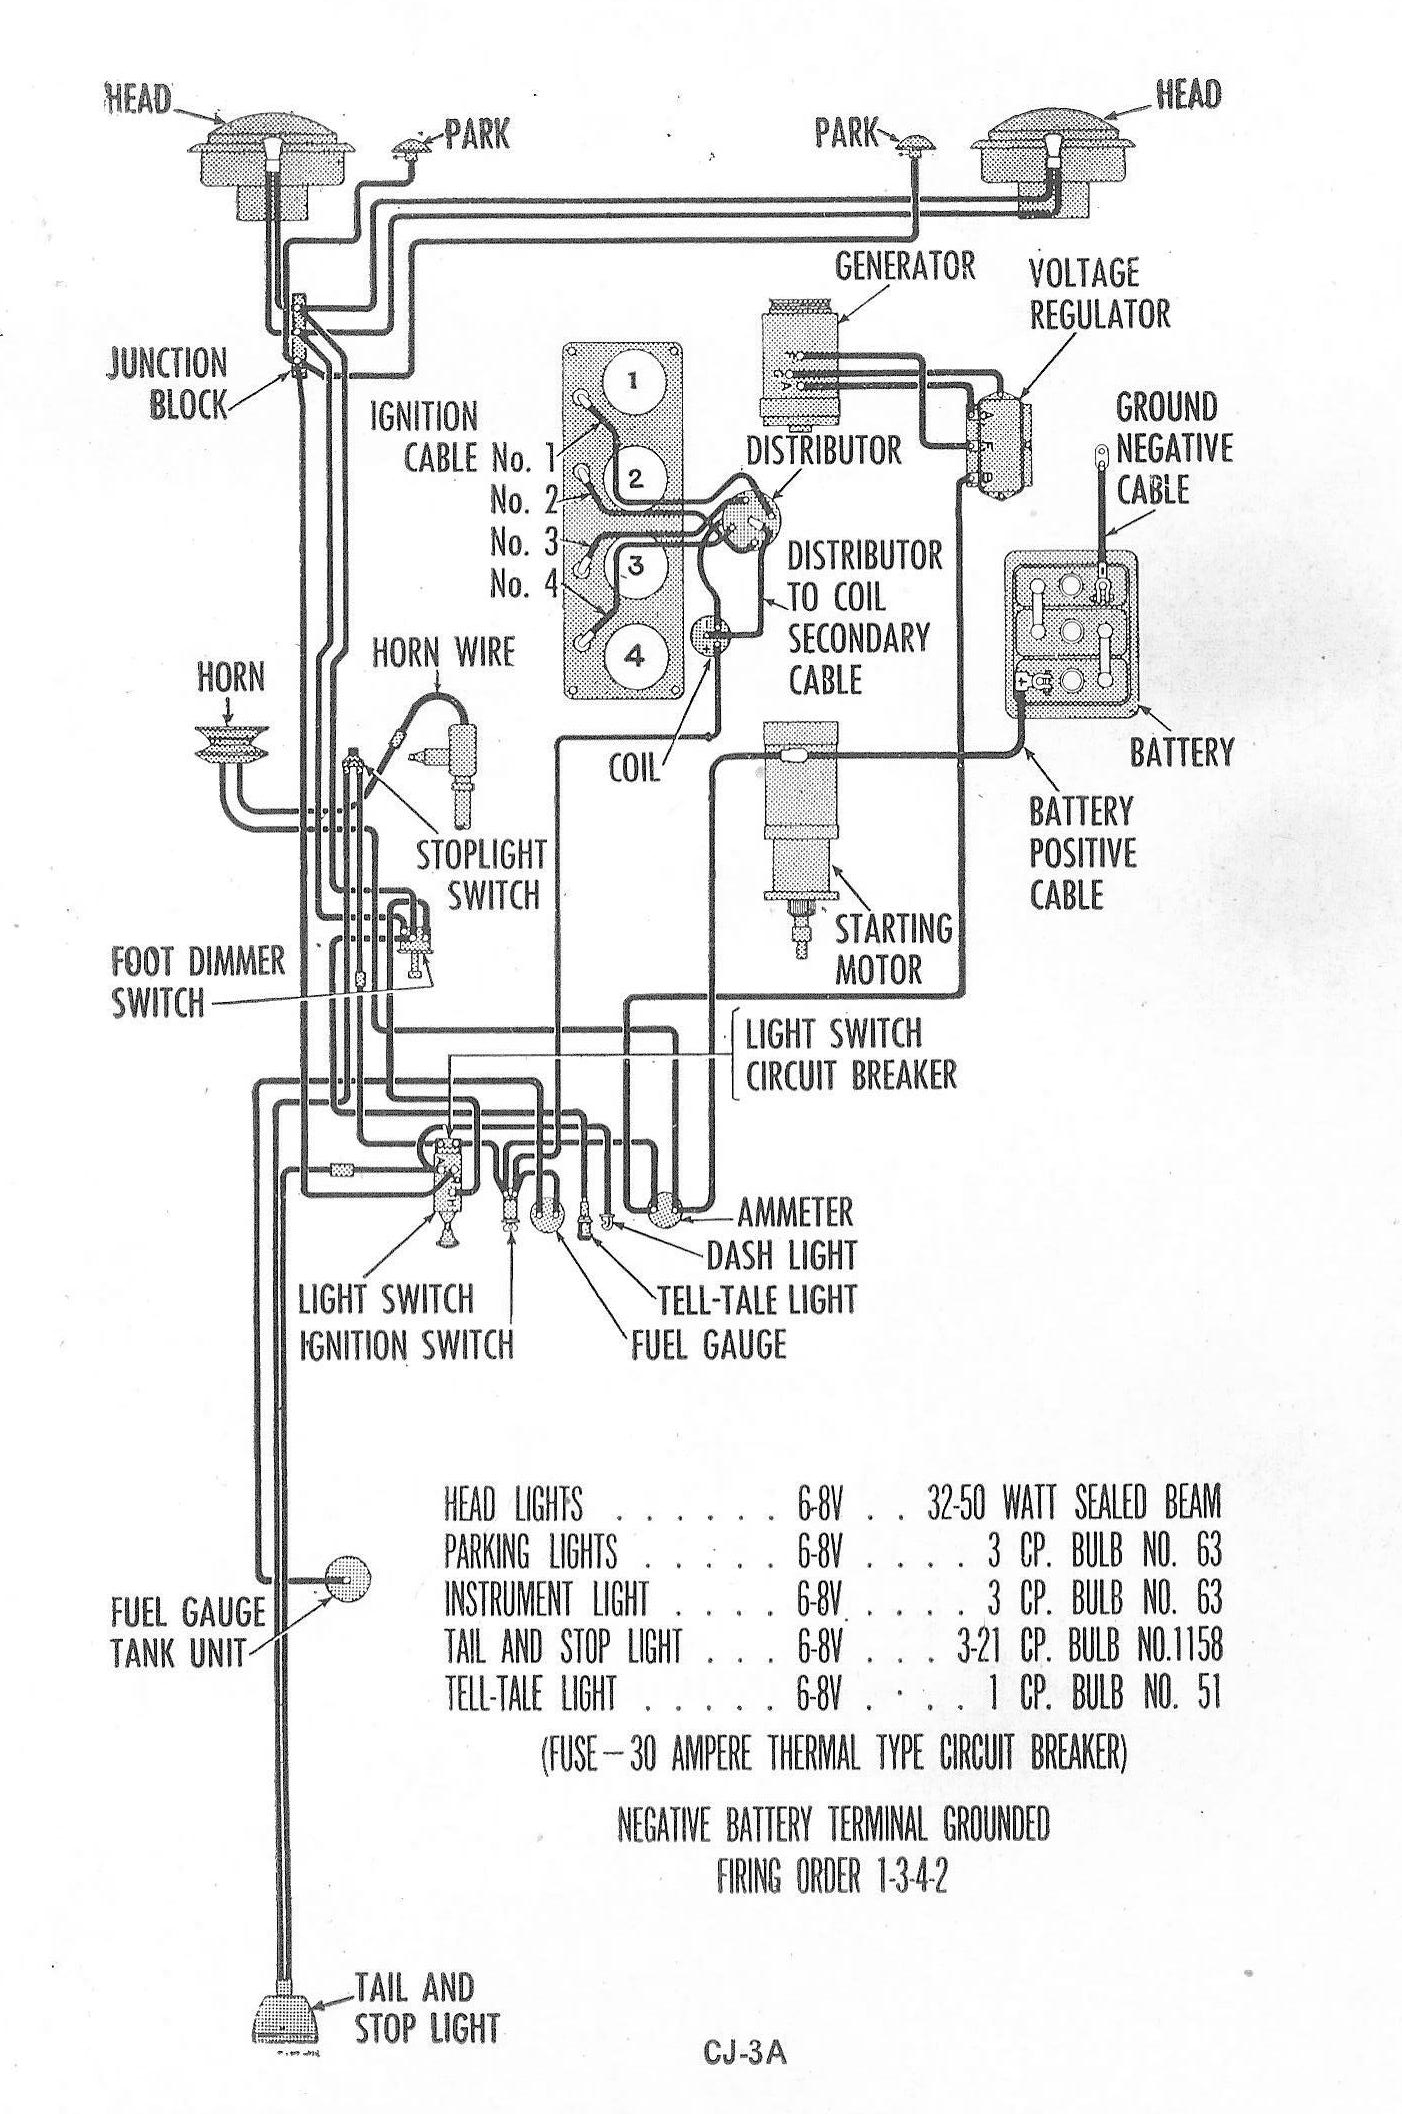 1953 jeep wiring diagram - wiring diagram options dark-neutral -  dark-neutral.studiopyxis.it  pyxis